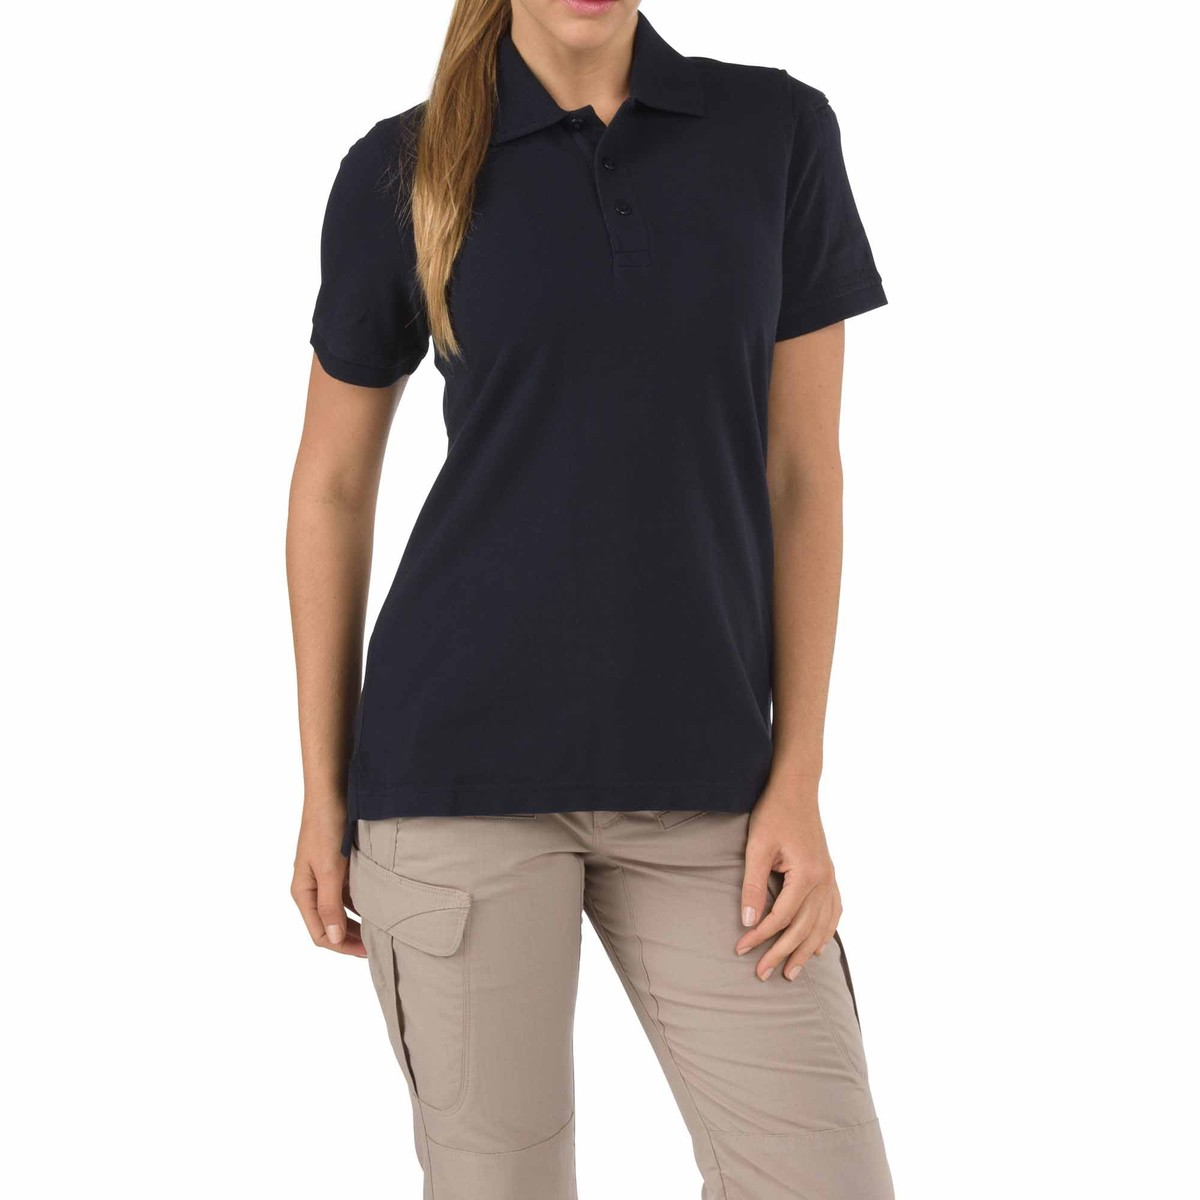 Uniform Military Enforcement For Buy Women's Law Tactical FqCwd16F